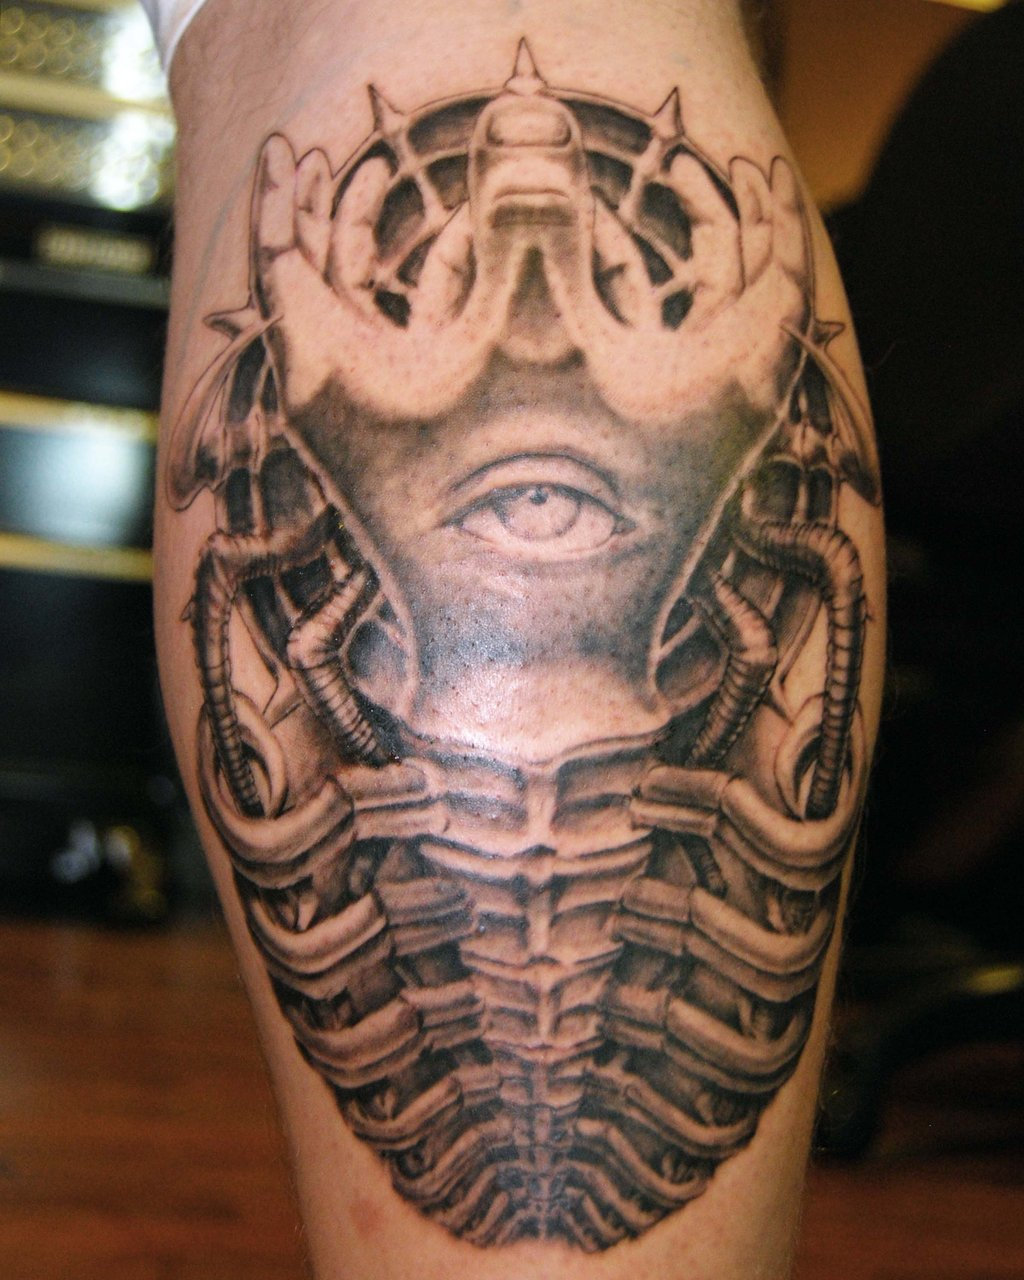 Eye Tattoos Designs Ideas And Meaning Tattoos For You Ideas And Designs